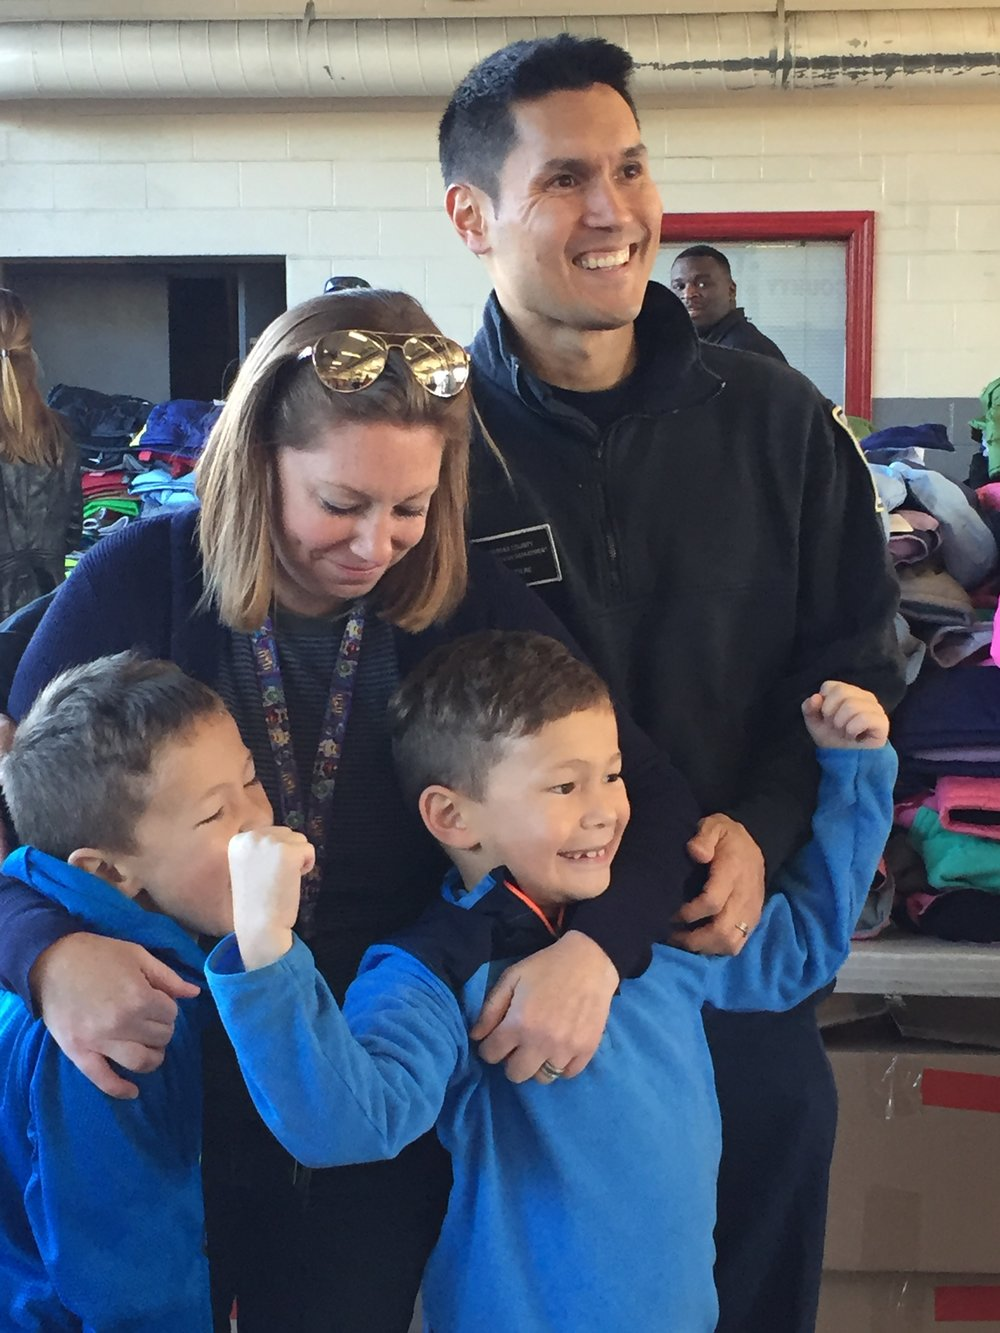 (Left to Right) My Family- Madden, Kelly, Maks and Ken Savittiere at the Coat Drive 2017